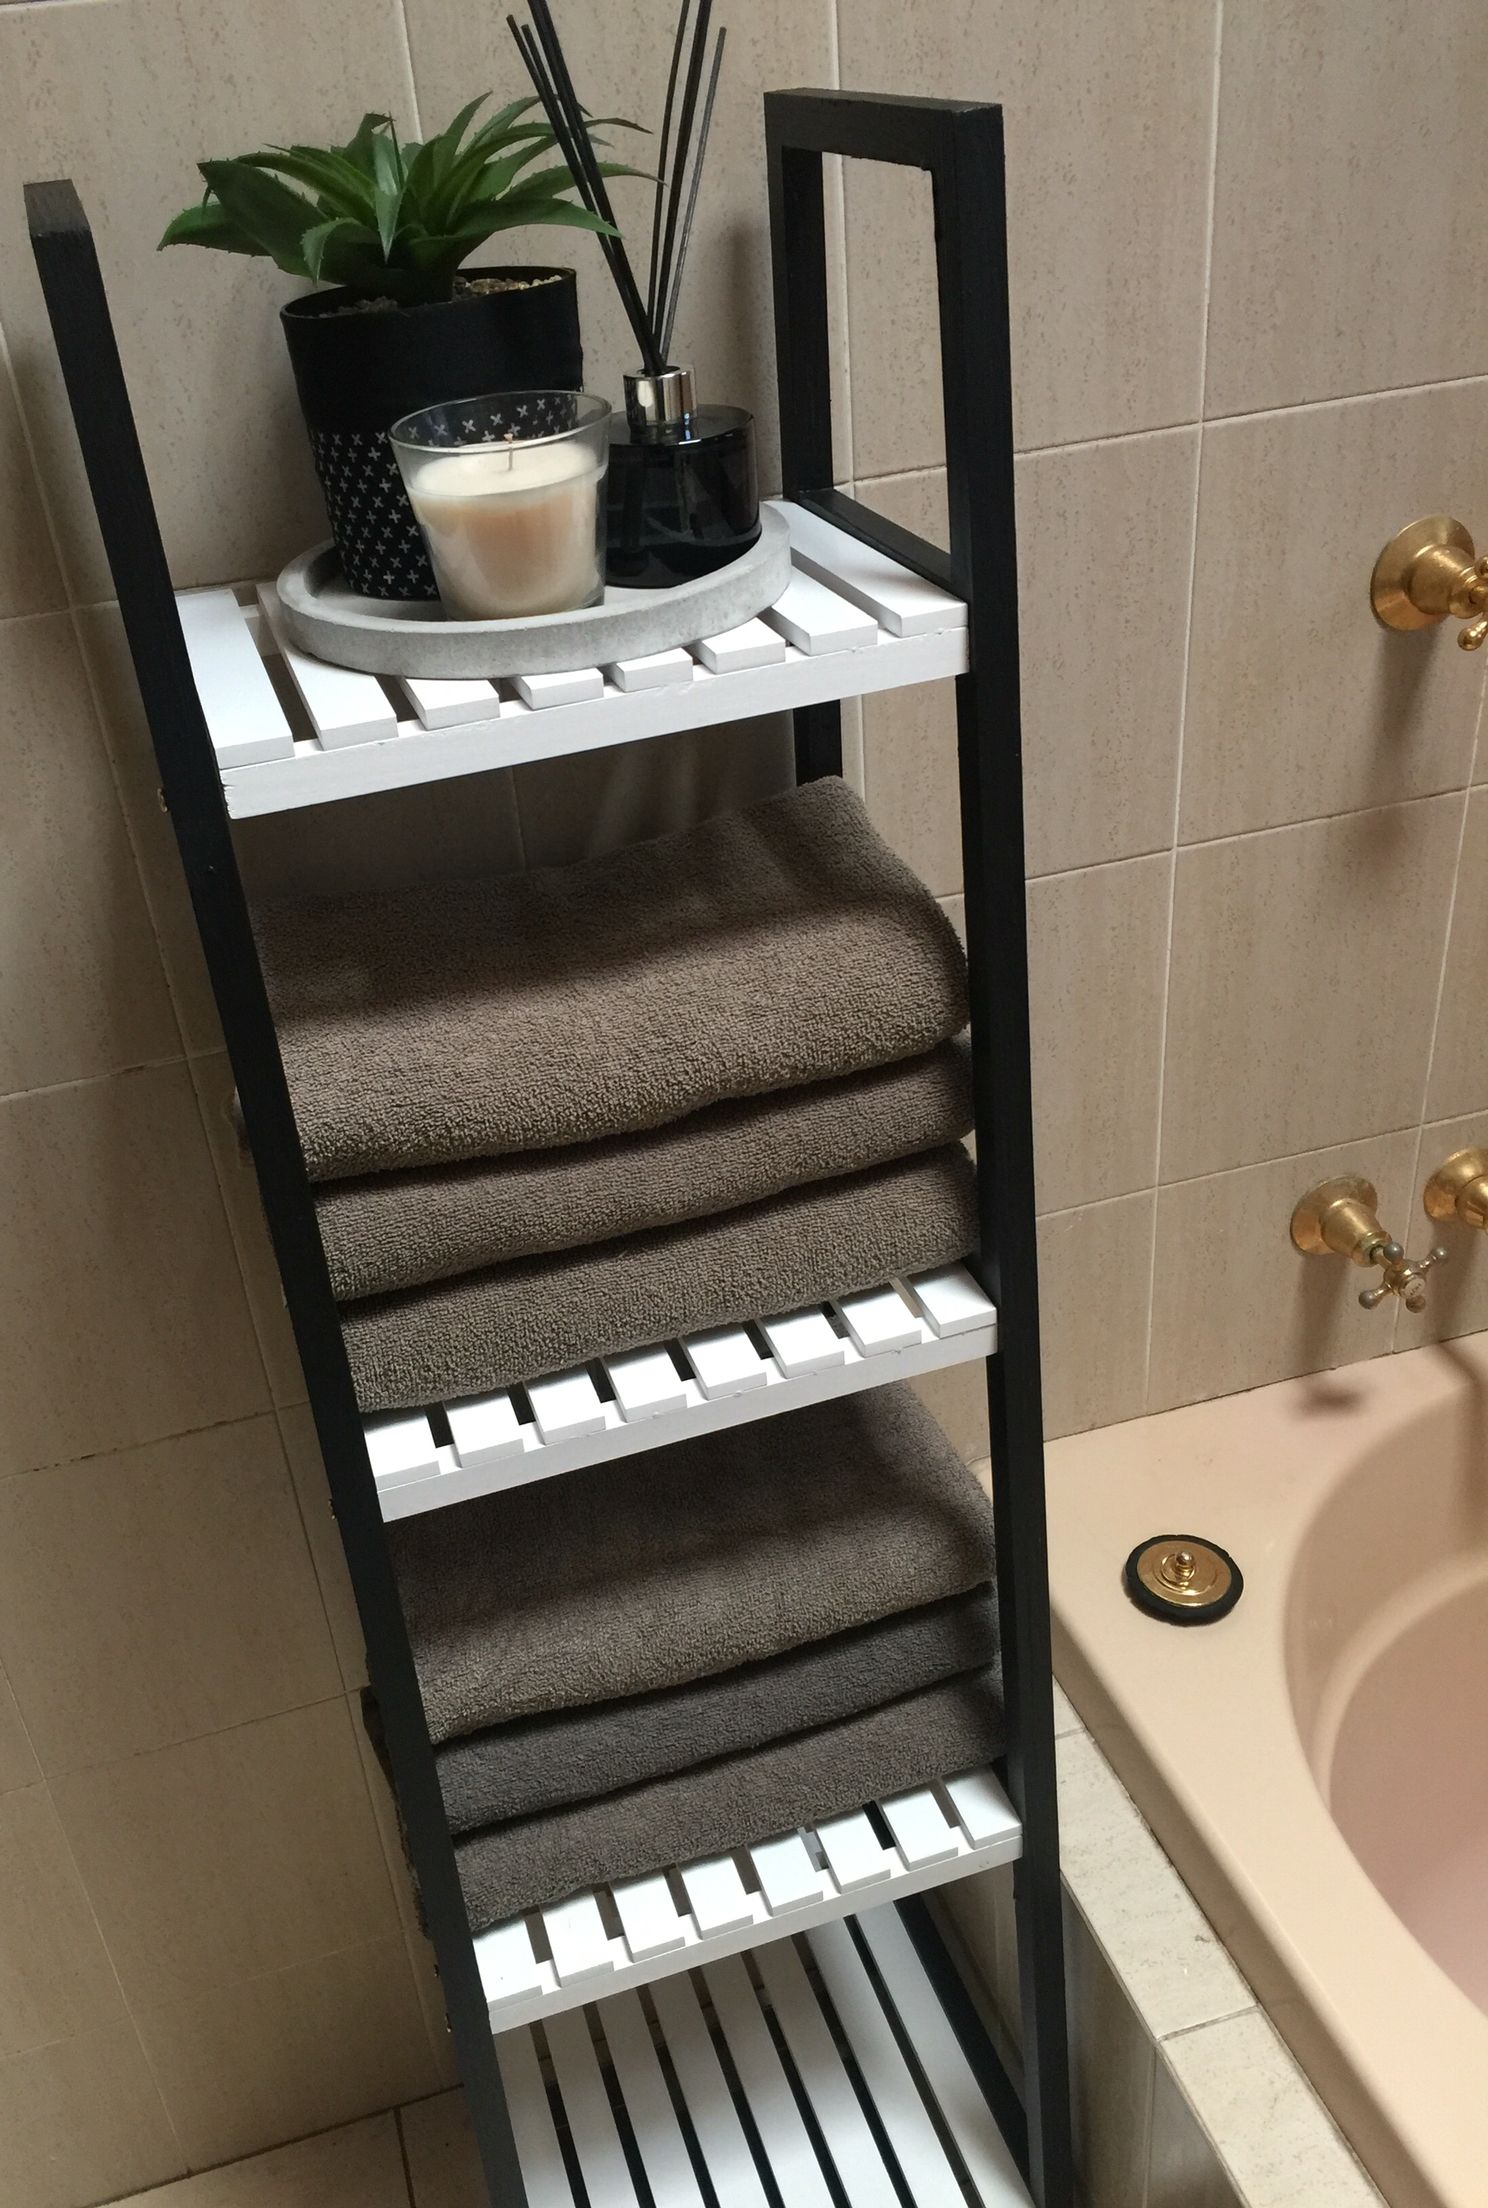 Kmart hack bathroom caddy shelves painted black and white to make it ...